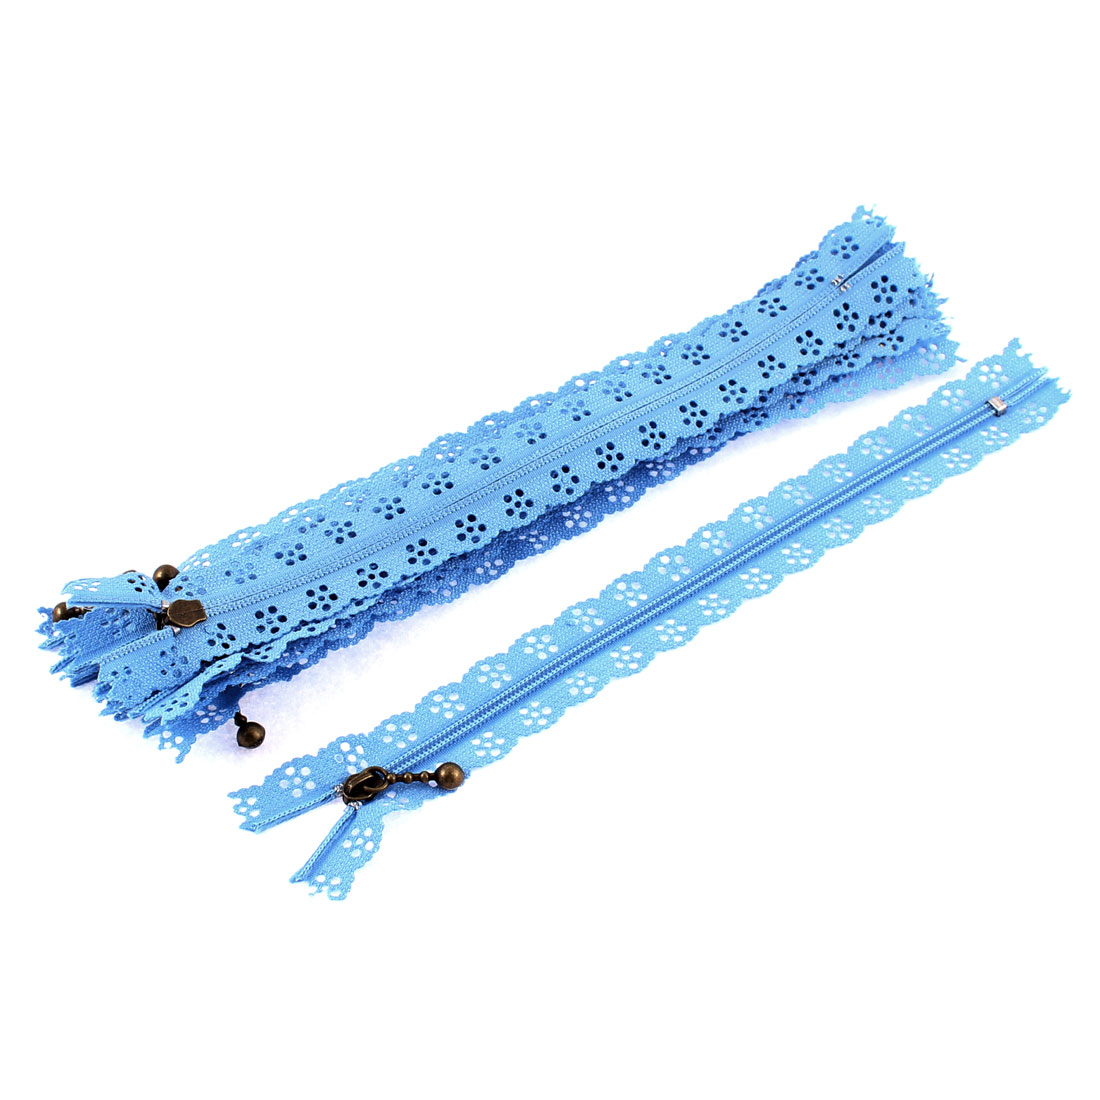 10 Pcs Light Blue Nylon Lace Edged Closed End Sewing Zipper Zip